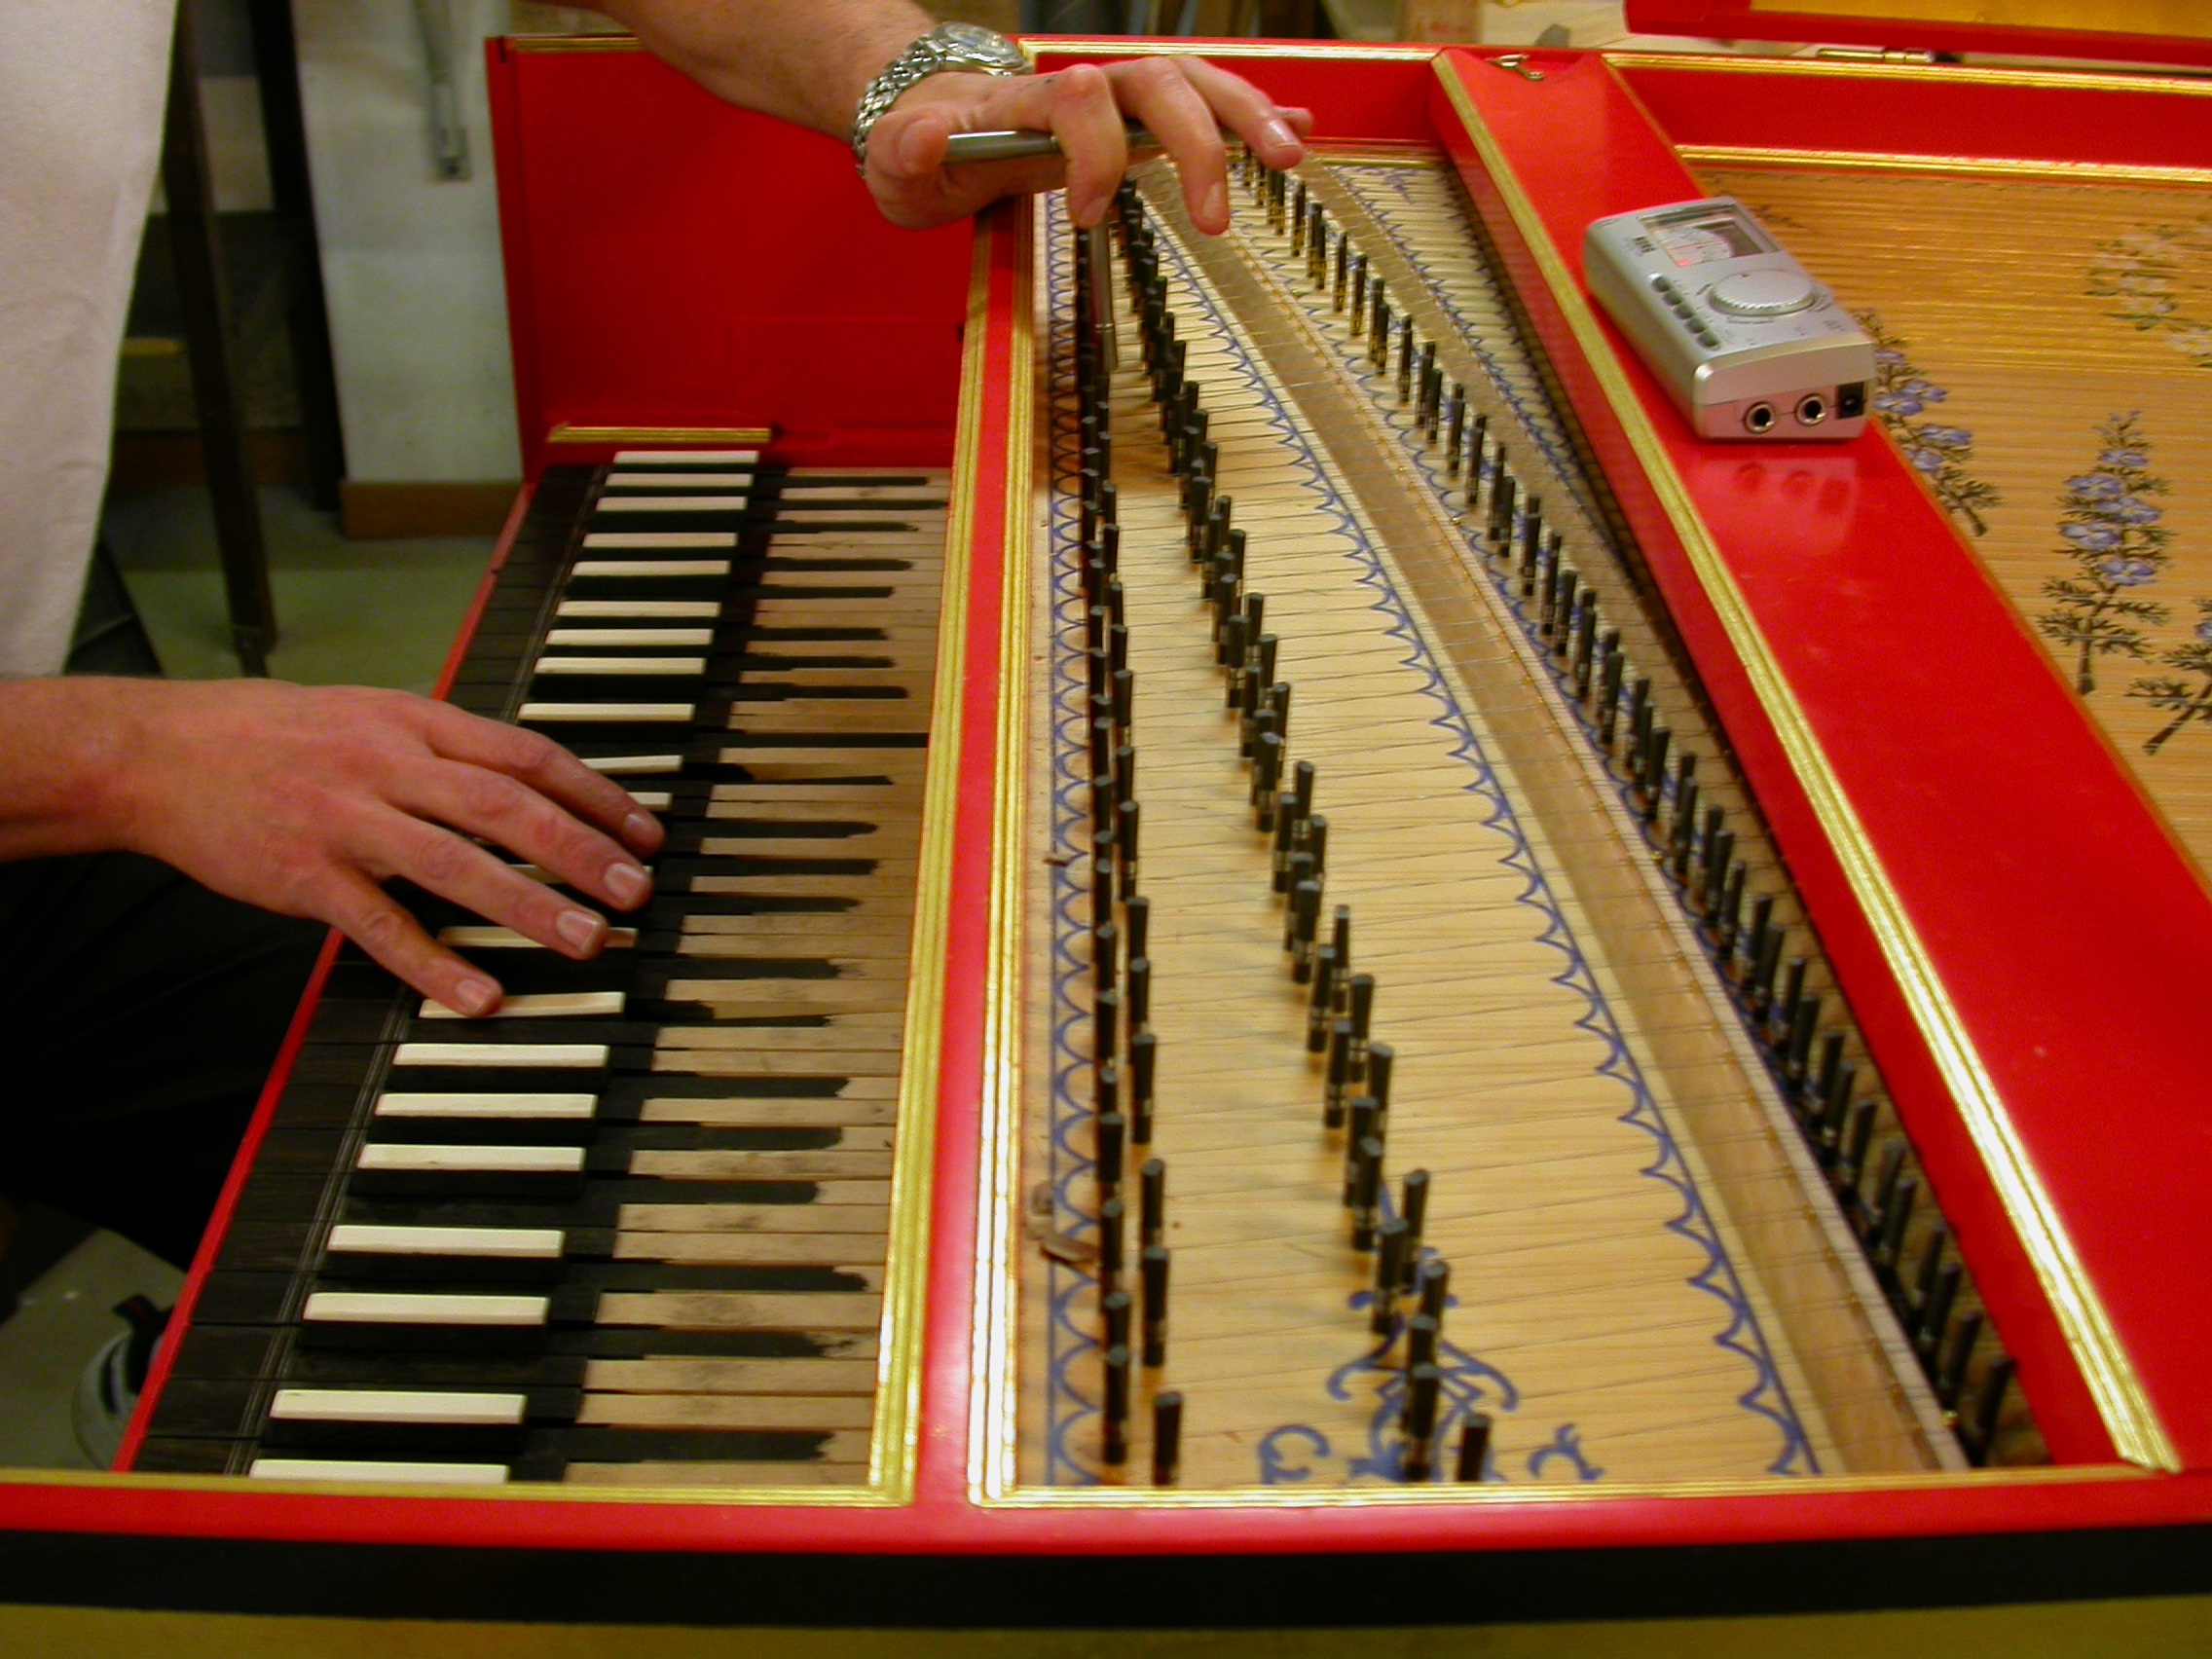 piano under construction hand playing music snares paul red